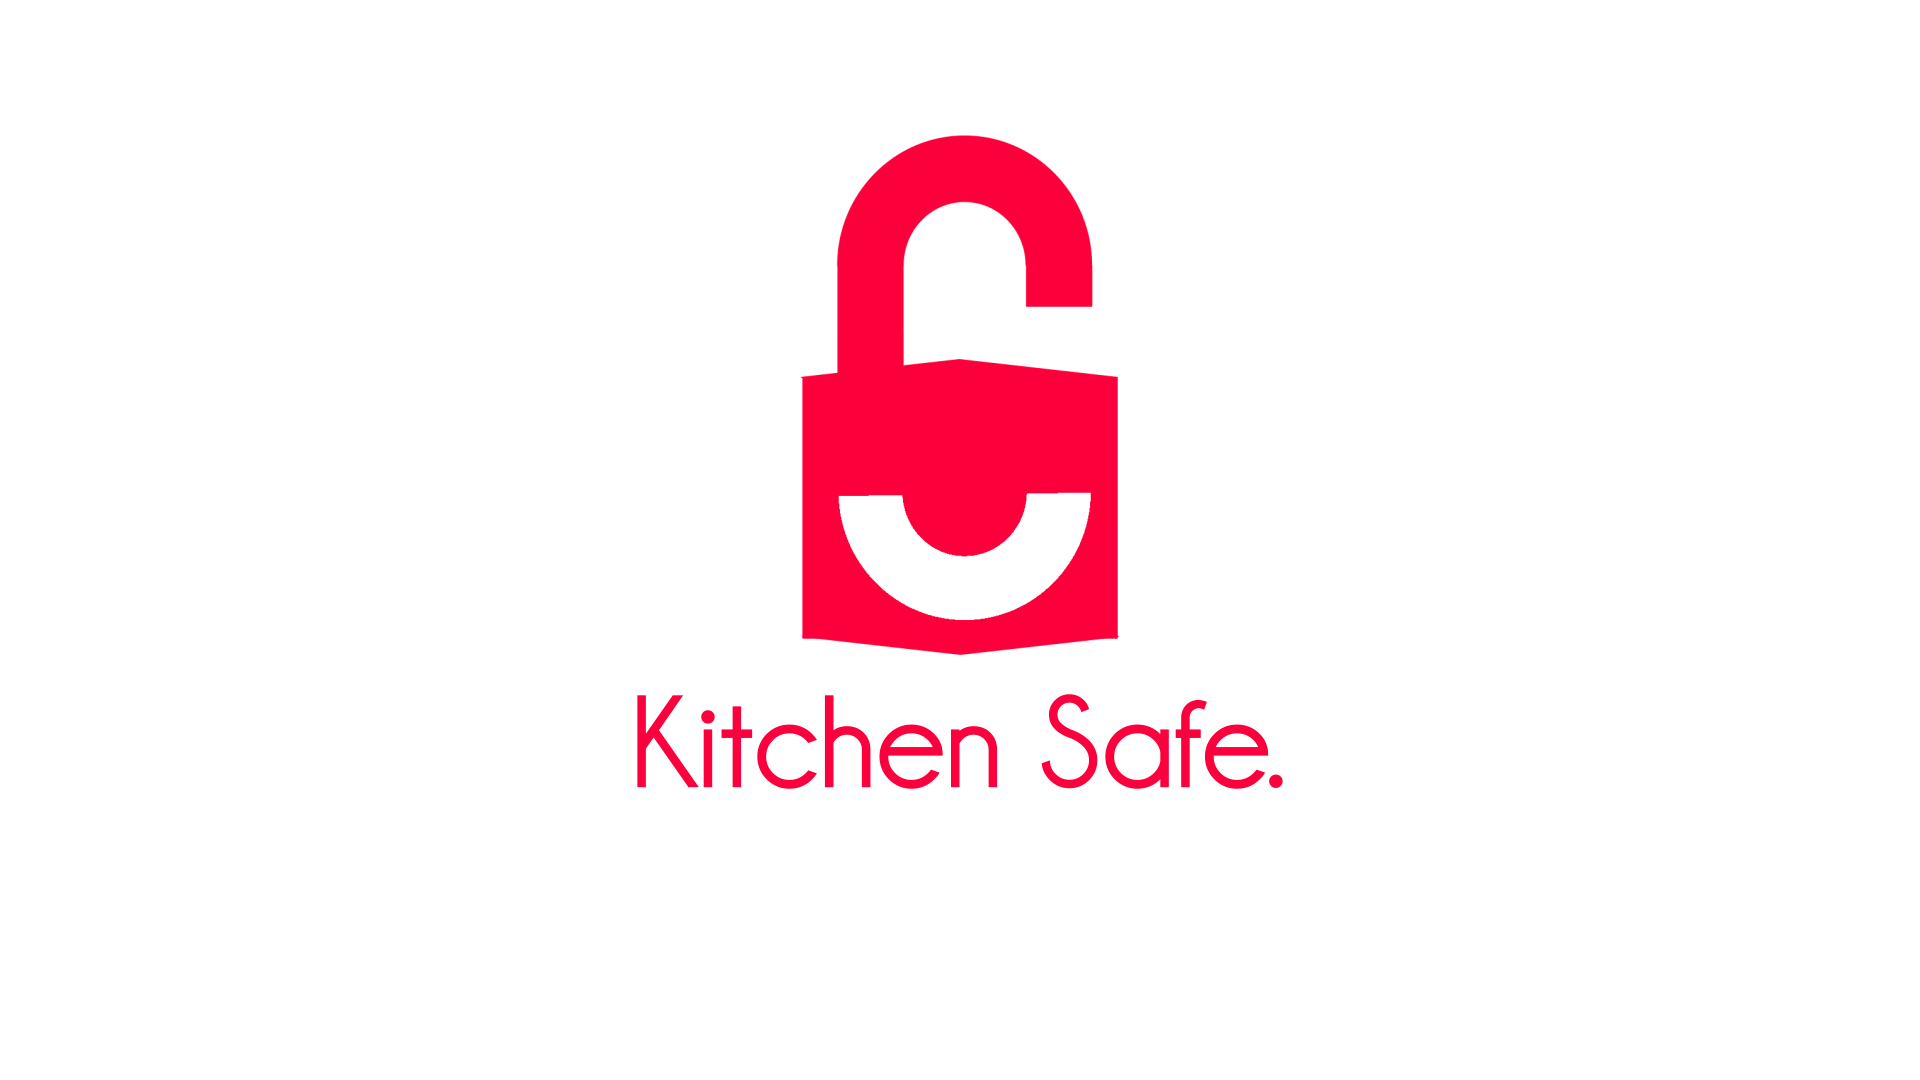 Up to 80% OFF Kitchen Safe Coupon Codes, Promo Codes and